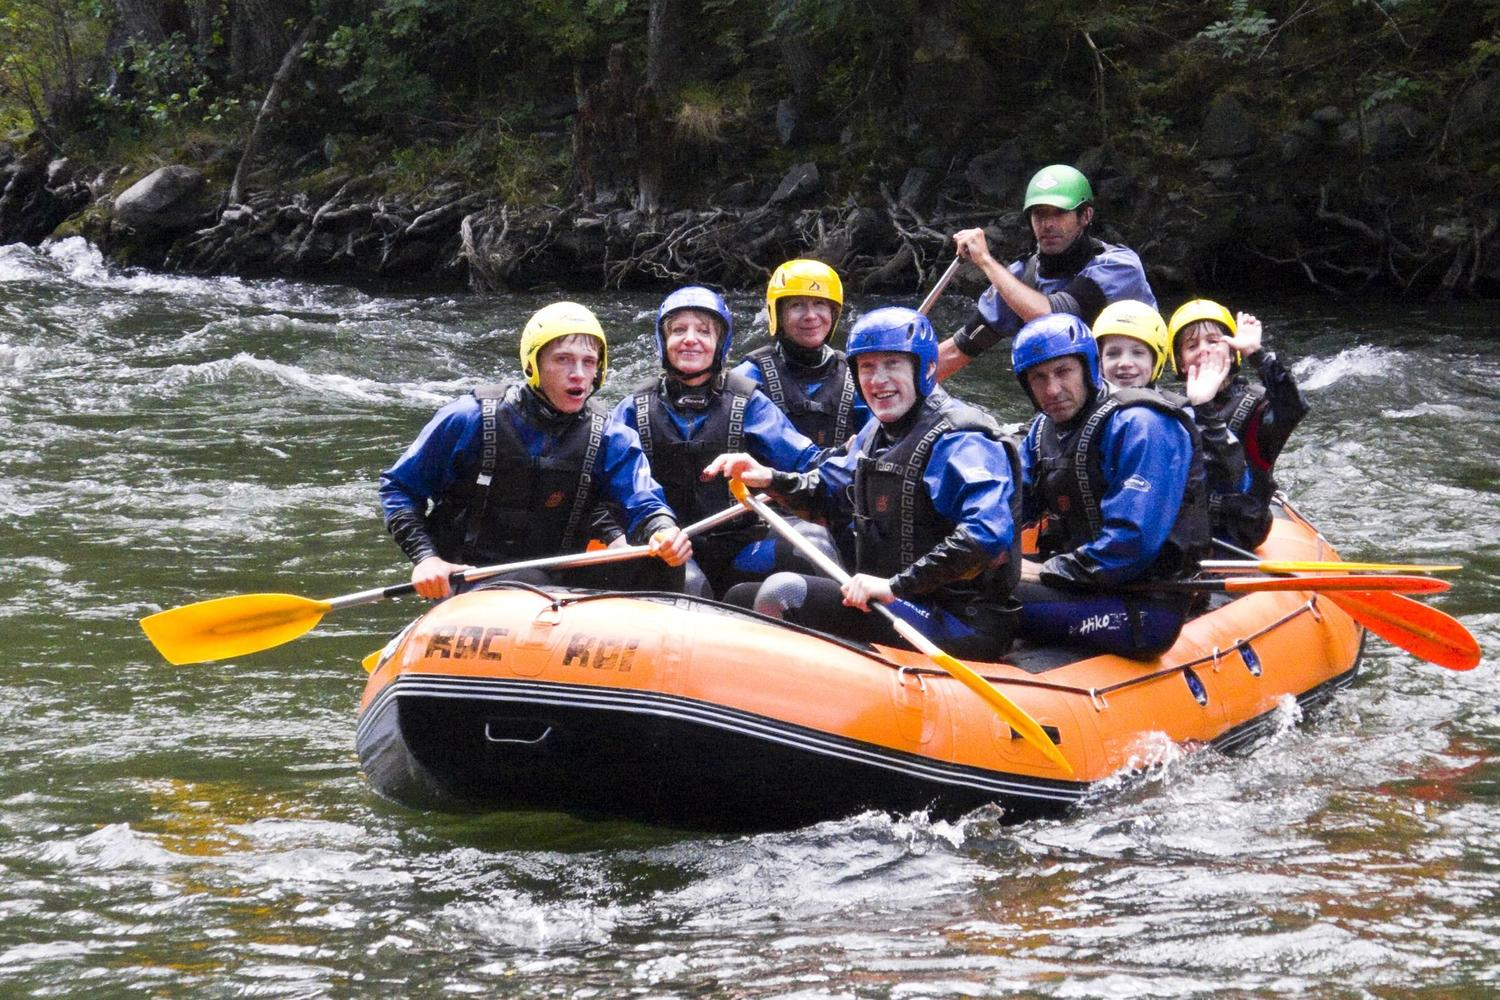 Rafting the Pallars Sobira River in the Pyrenees